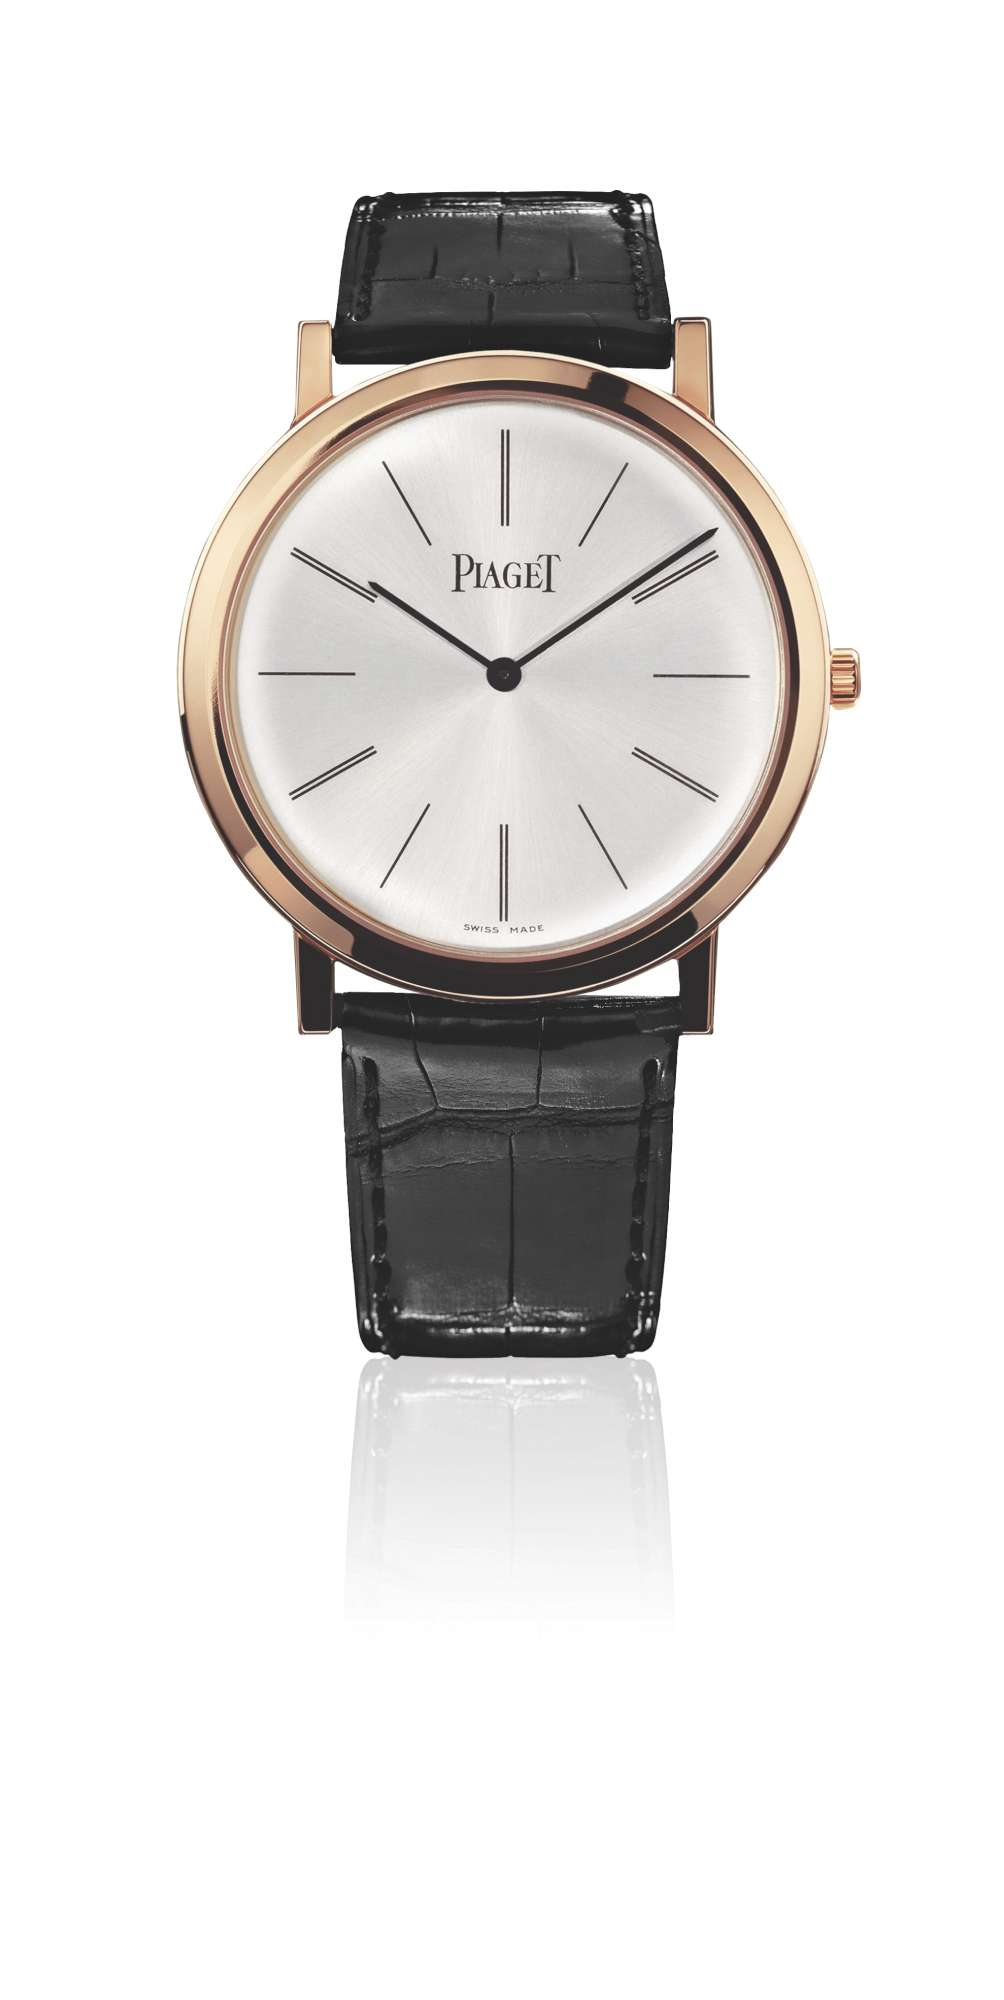 38mm rose gold Piaget Altiplano